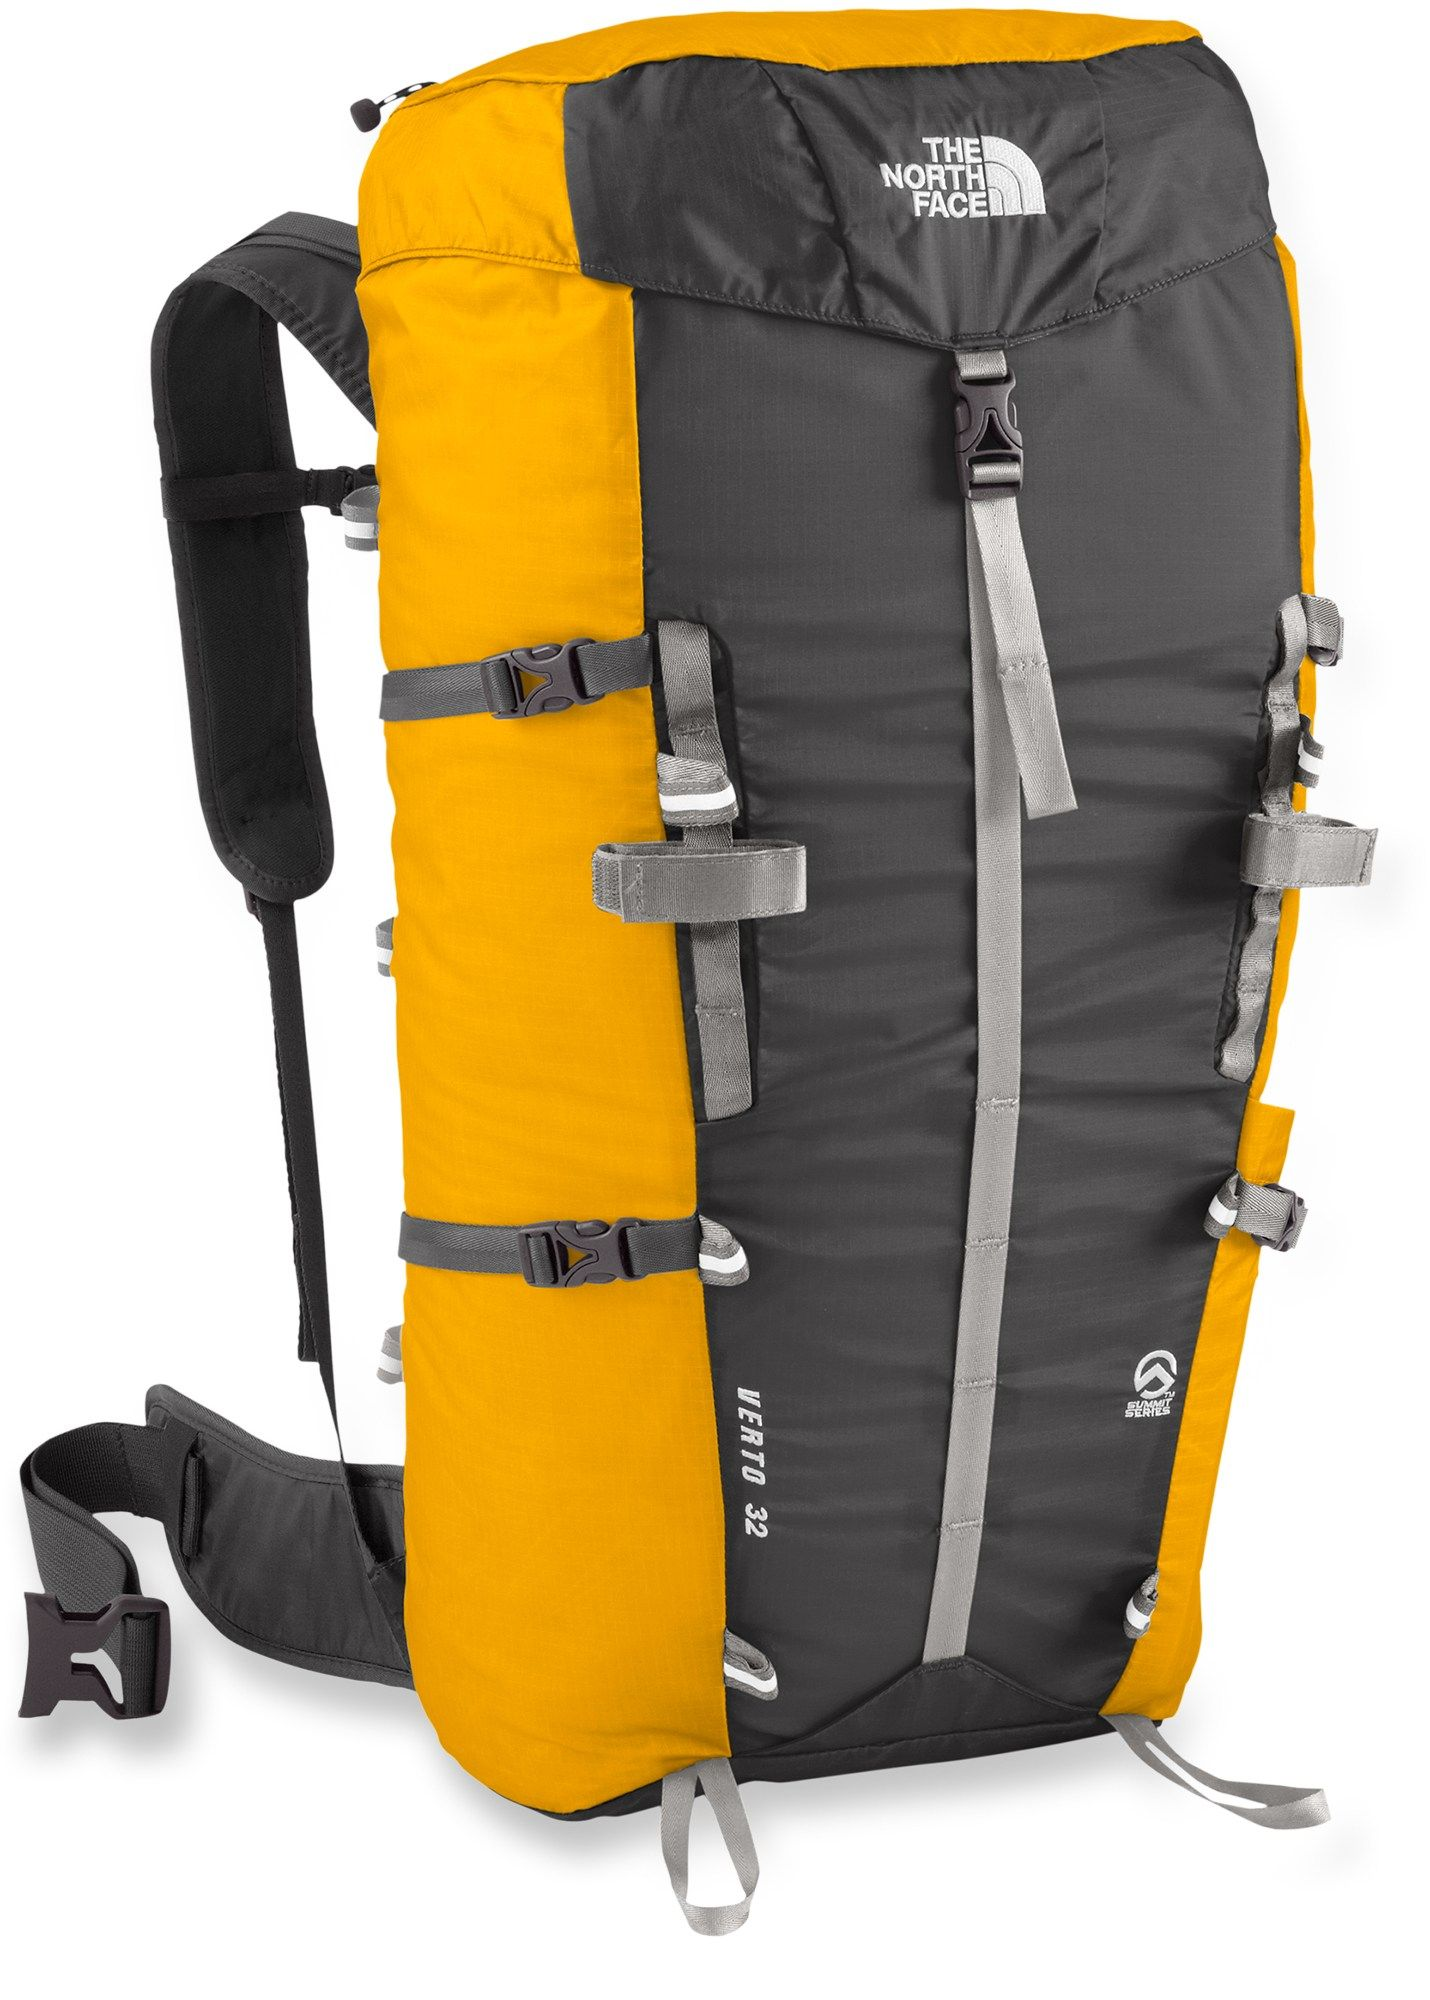 The North Face Verto 32 Pack - Free Shipping at REI.com   Camping ...